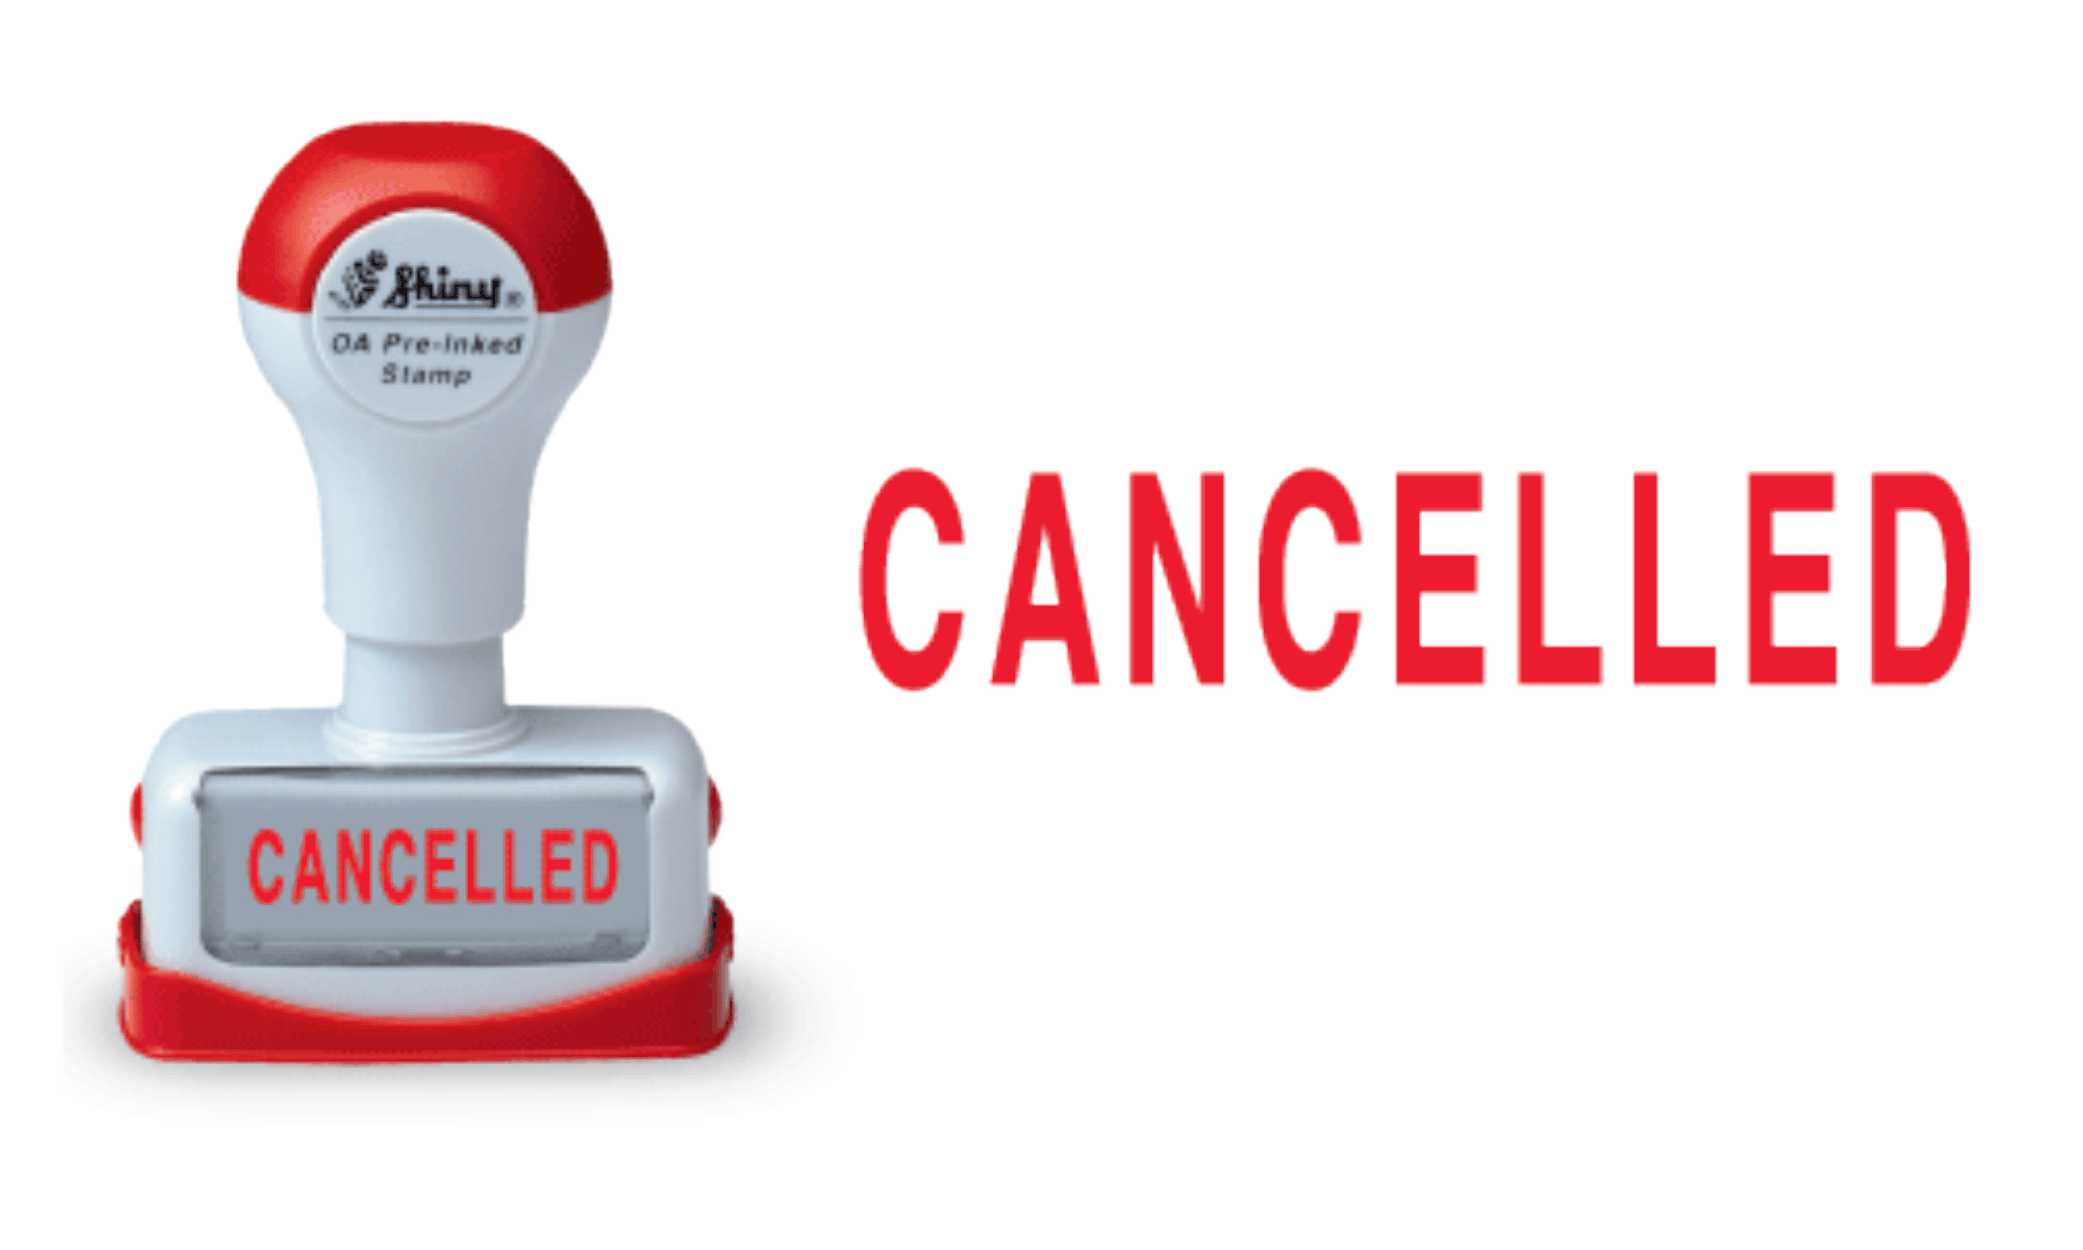 Cancelled - OA Pre ink